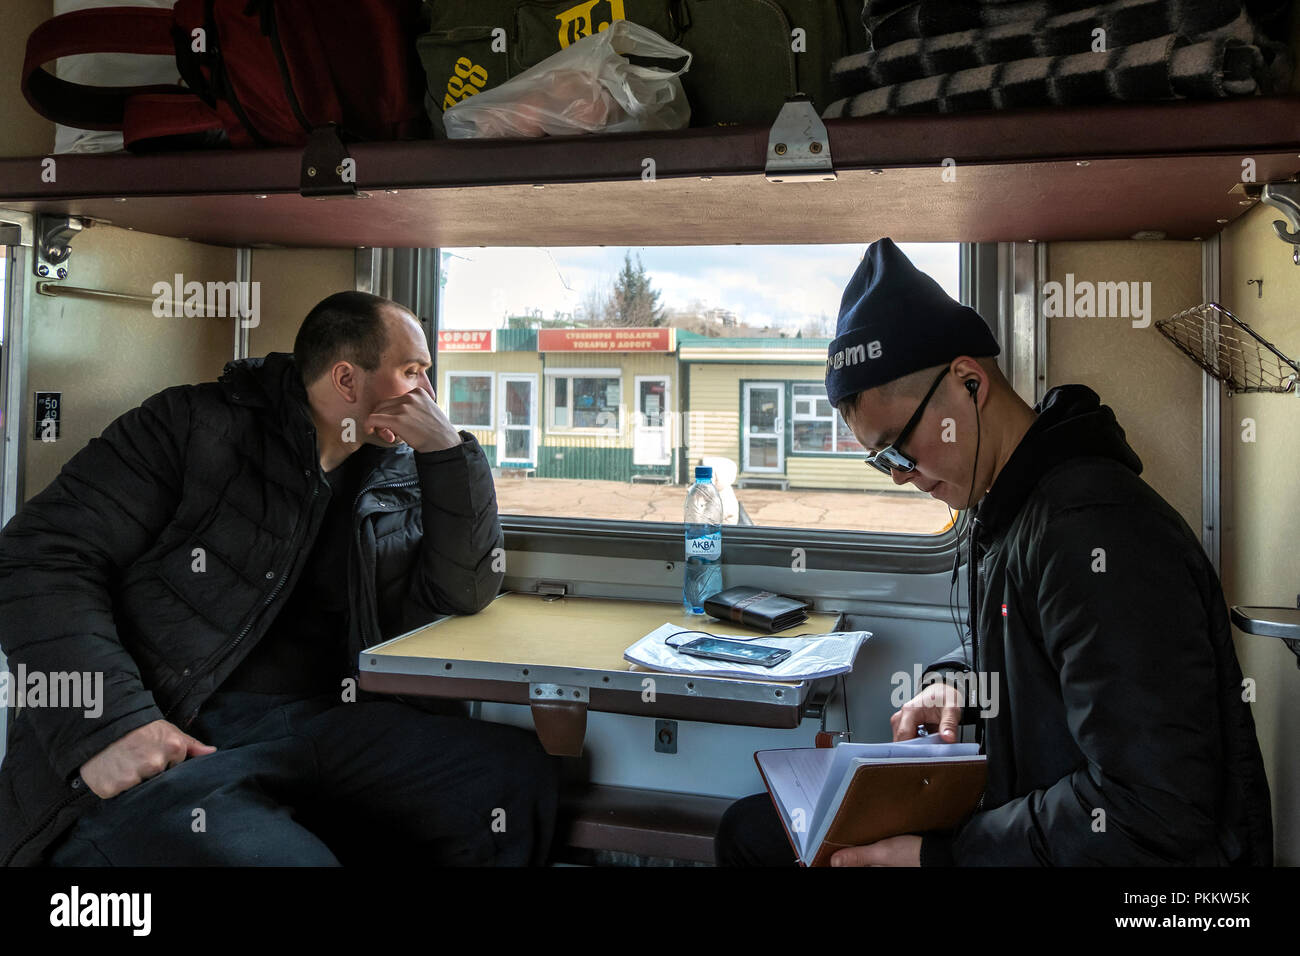 SIBERIA, RUSSIA - MARCH 20, 2018: The Russian passenger is watching outside from train. Khabarovsk, Russia. - Stock Image